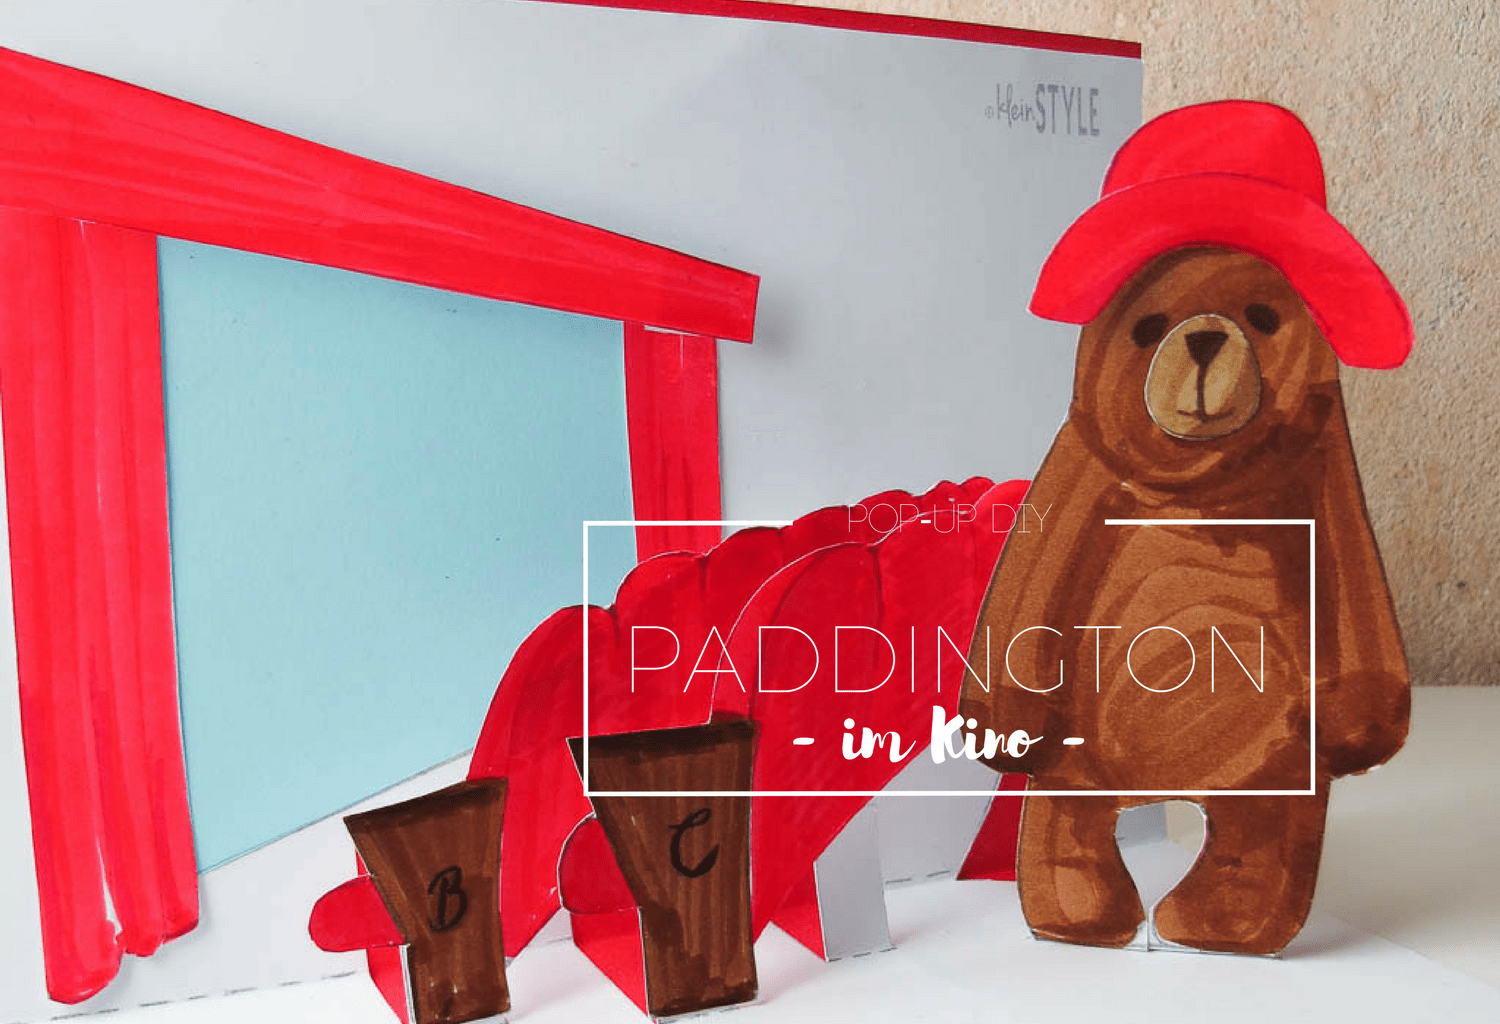 Paddington im Kino Pop up DIY by kleinstyle.com COVER